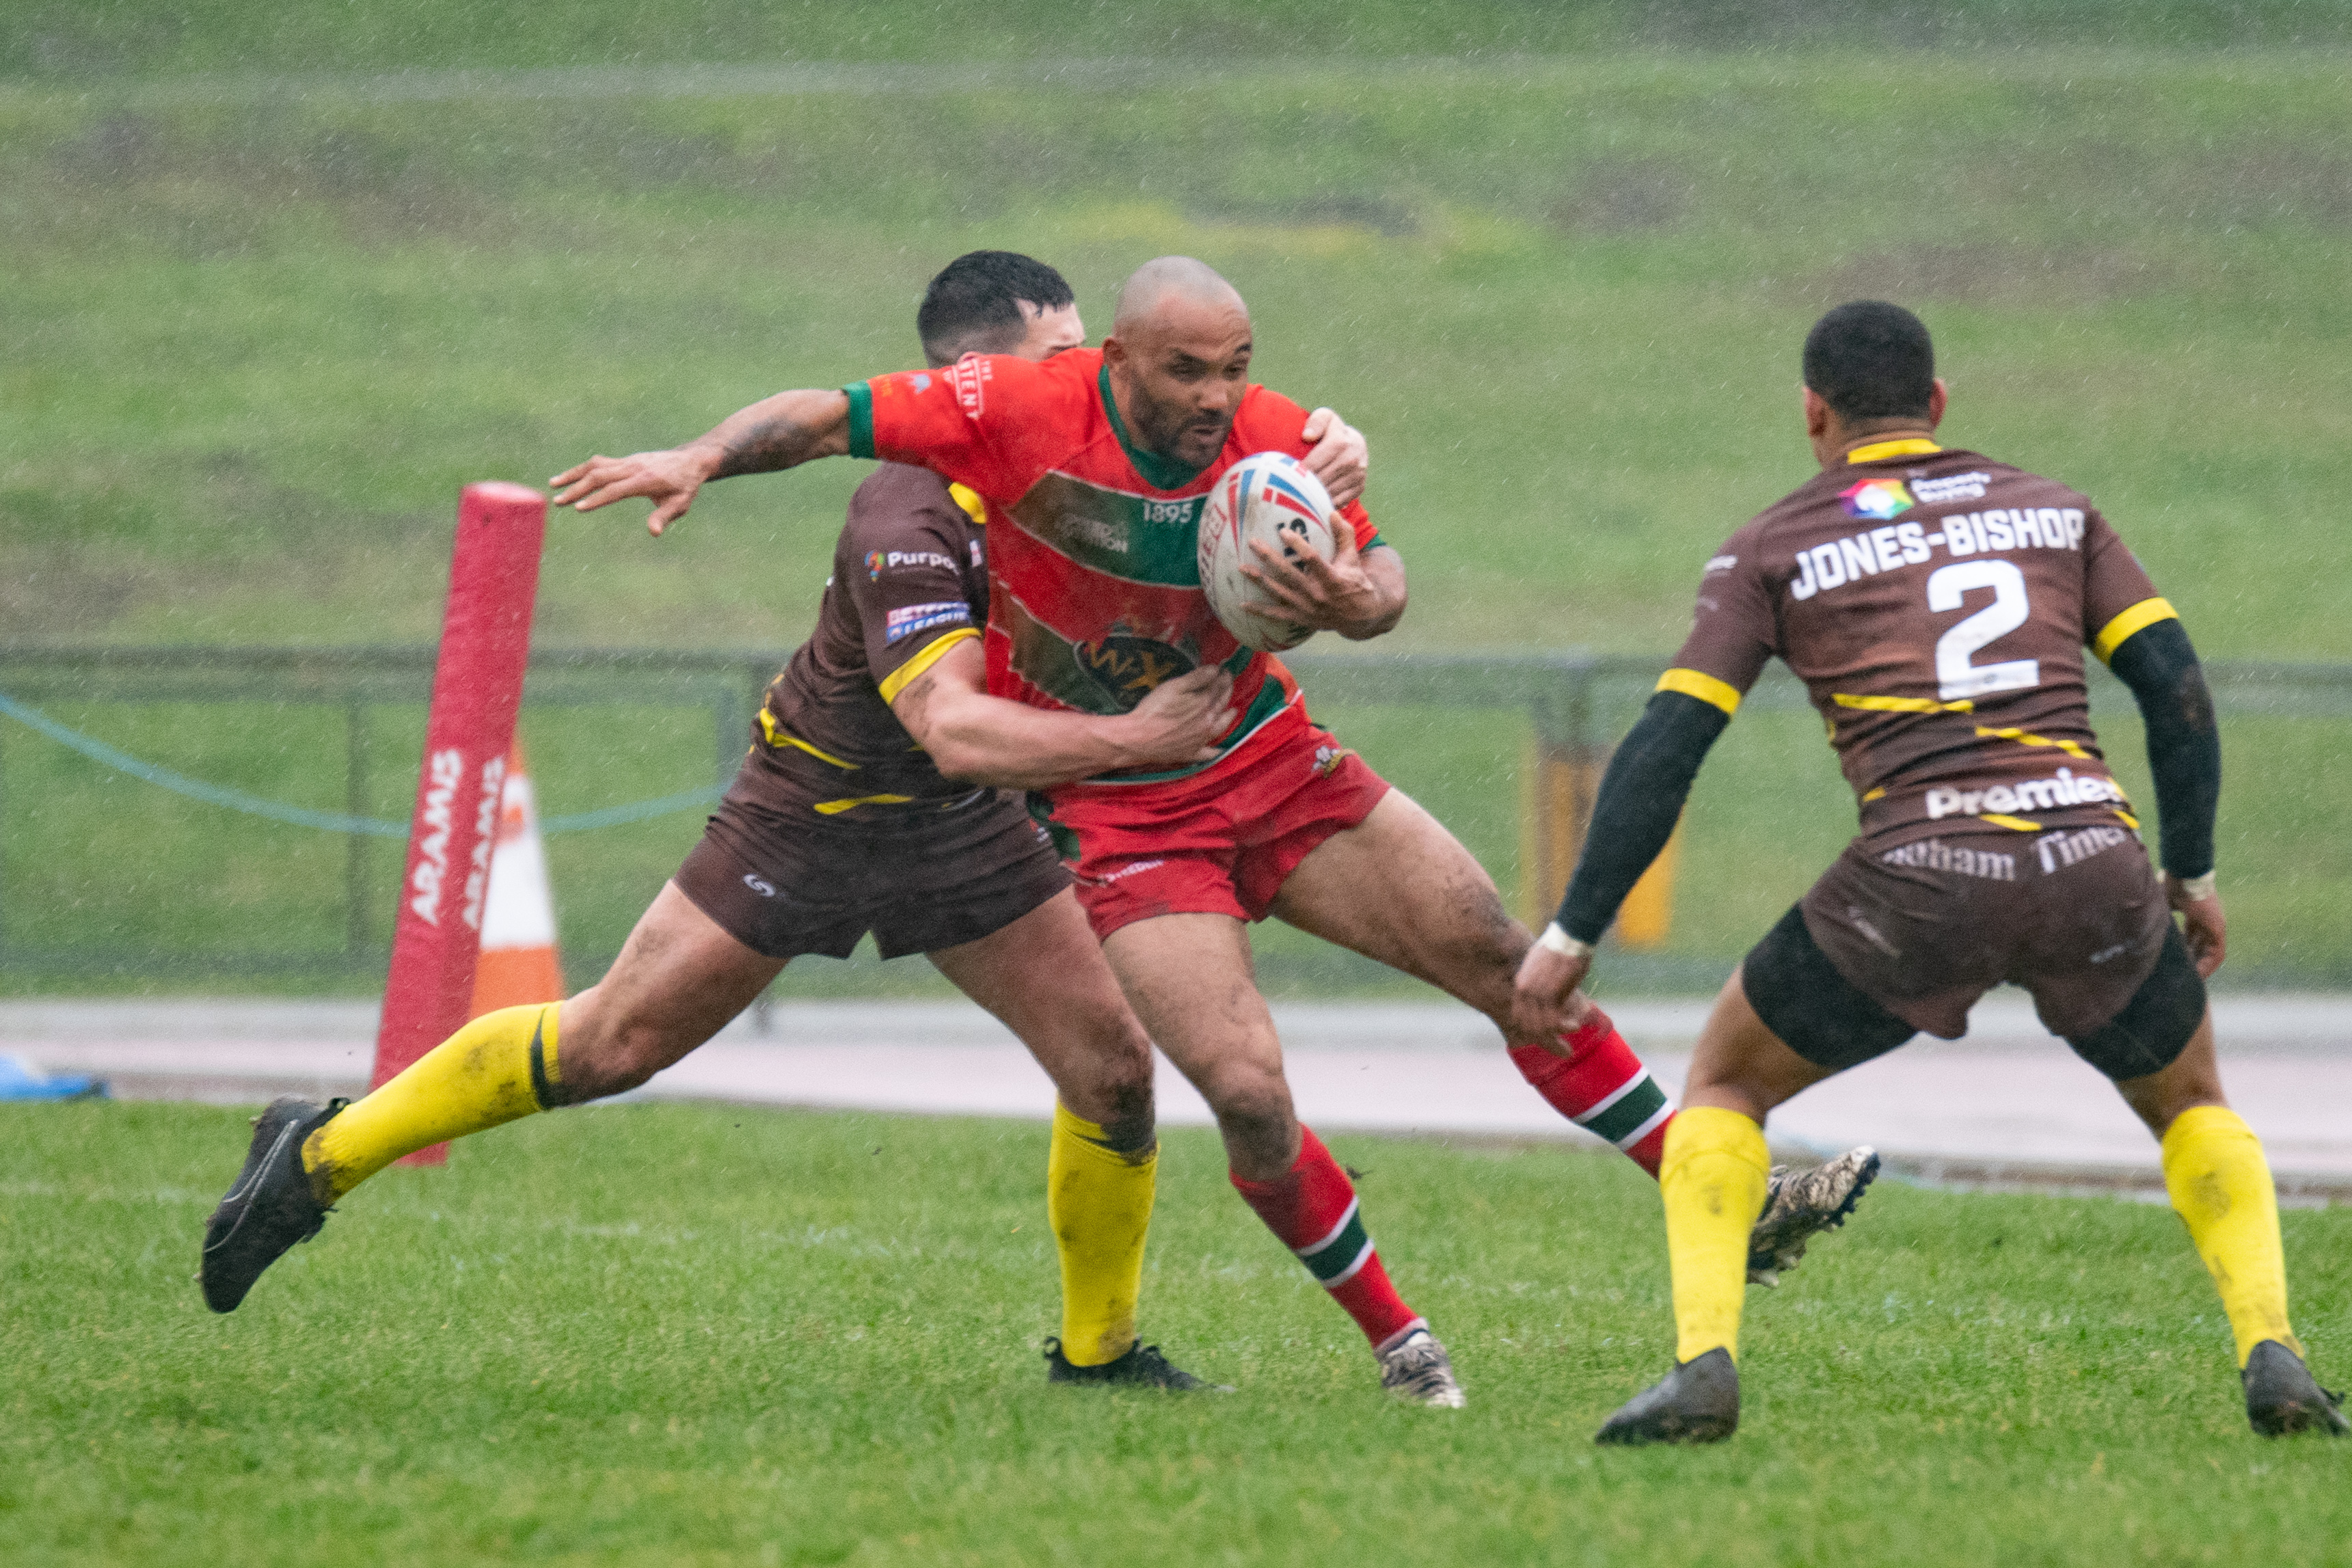 Report: North Wales Crusaders 14-16 Oldham